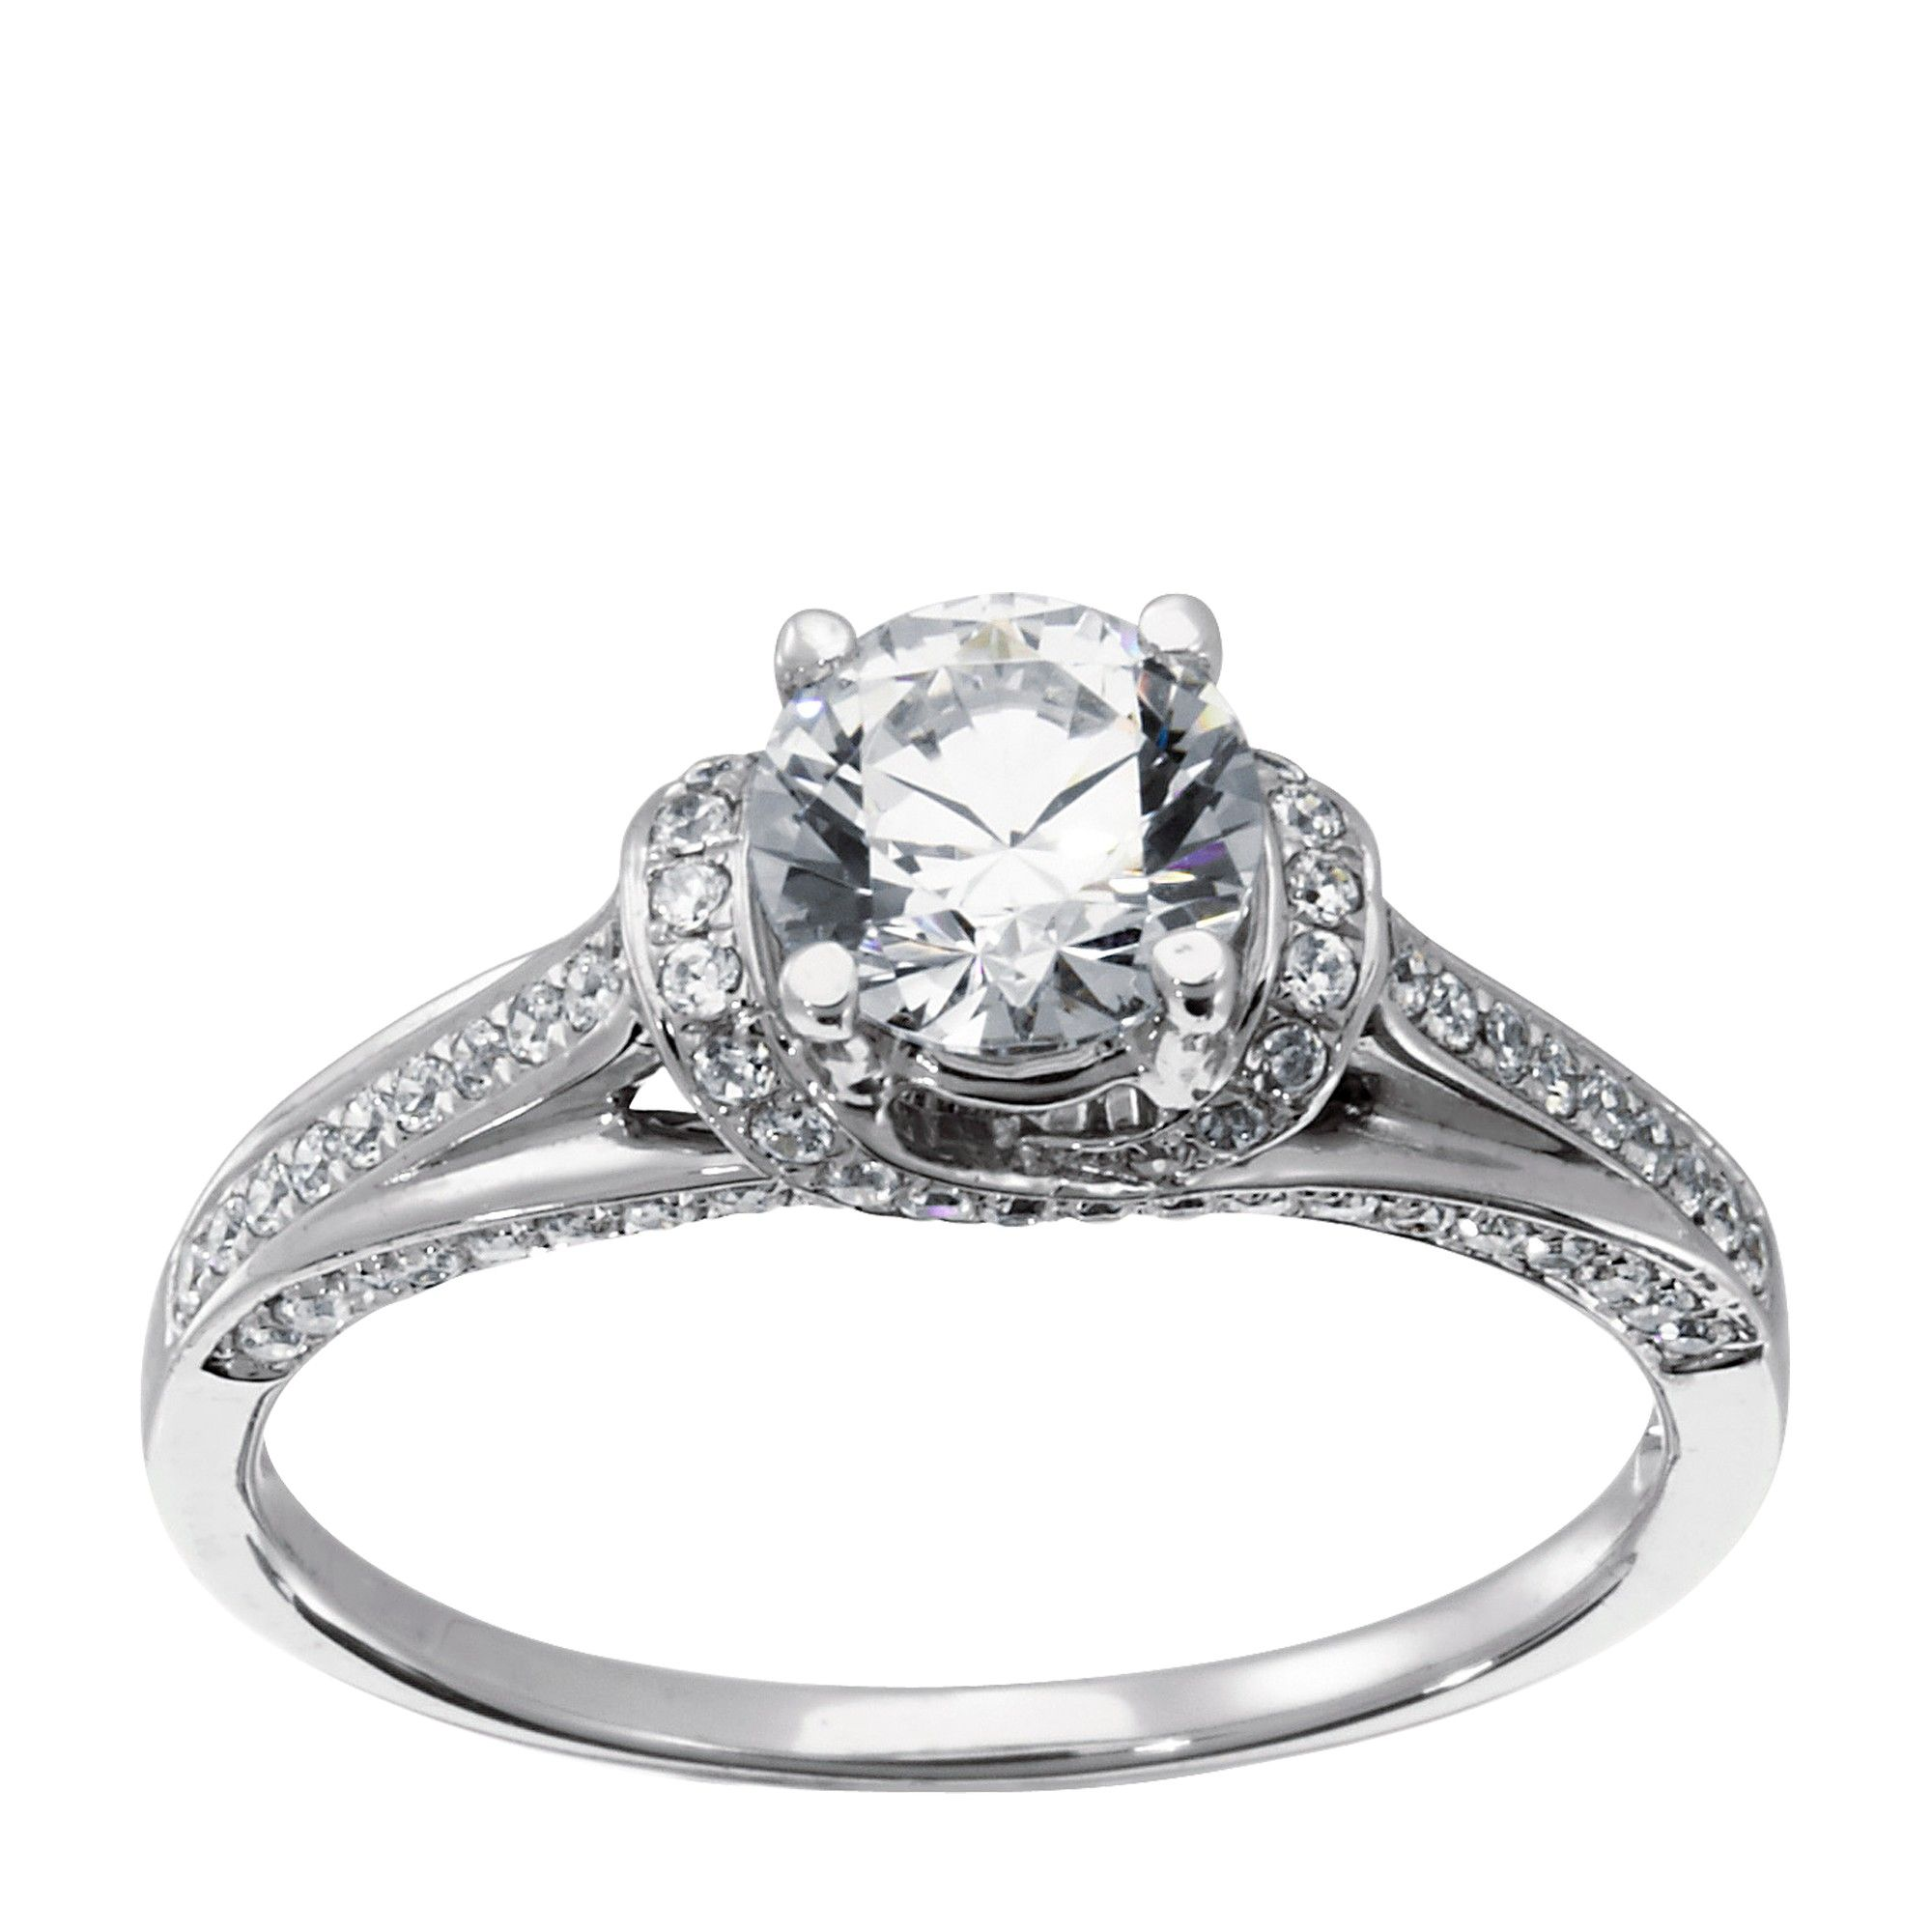 Jessica 10k Value Collection This Petite 10k Ring Is Surprisingly Glamorous With Its Modern Desig Engagement Rings Affordable Engagement Rings Pretty Rings